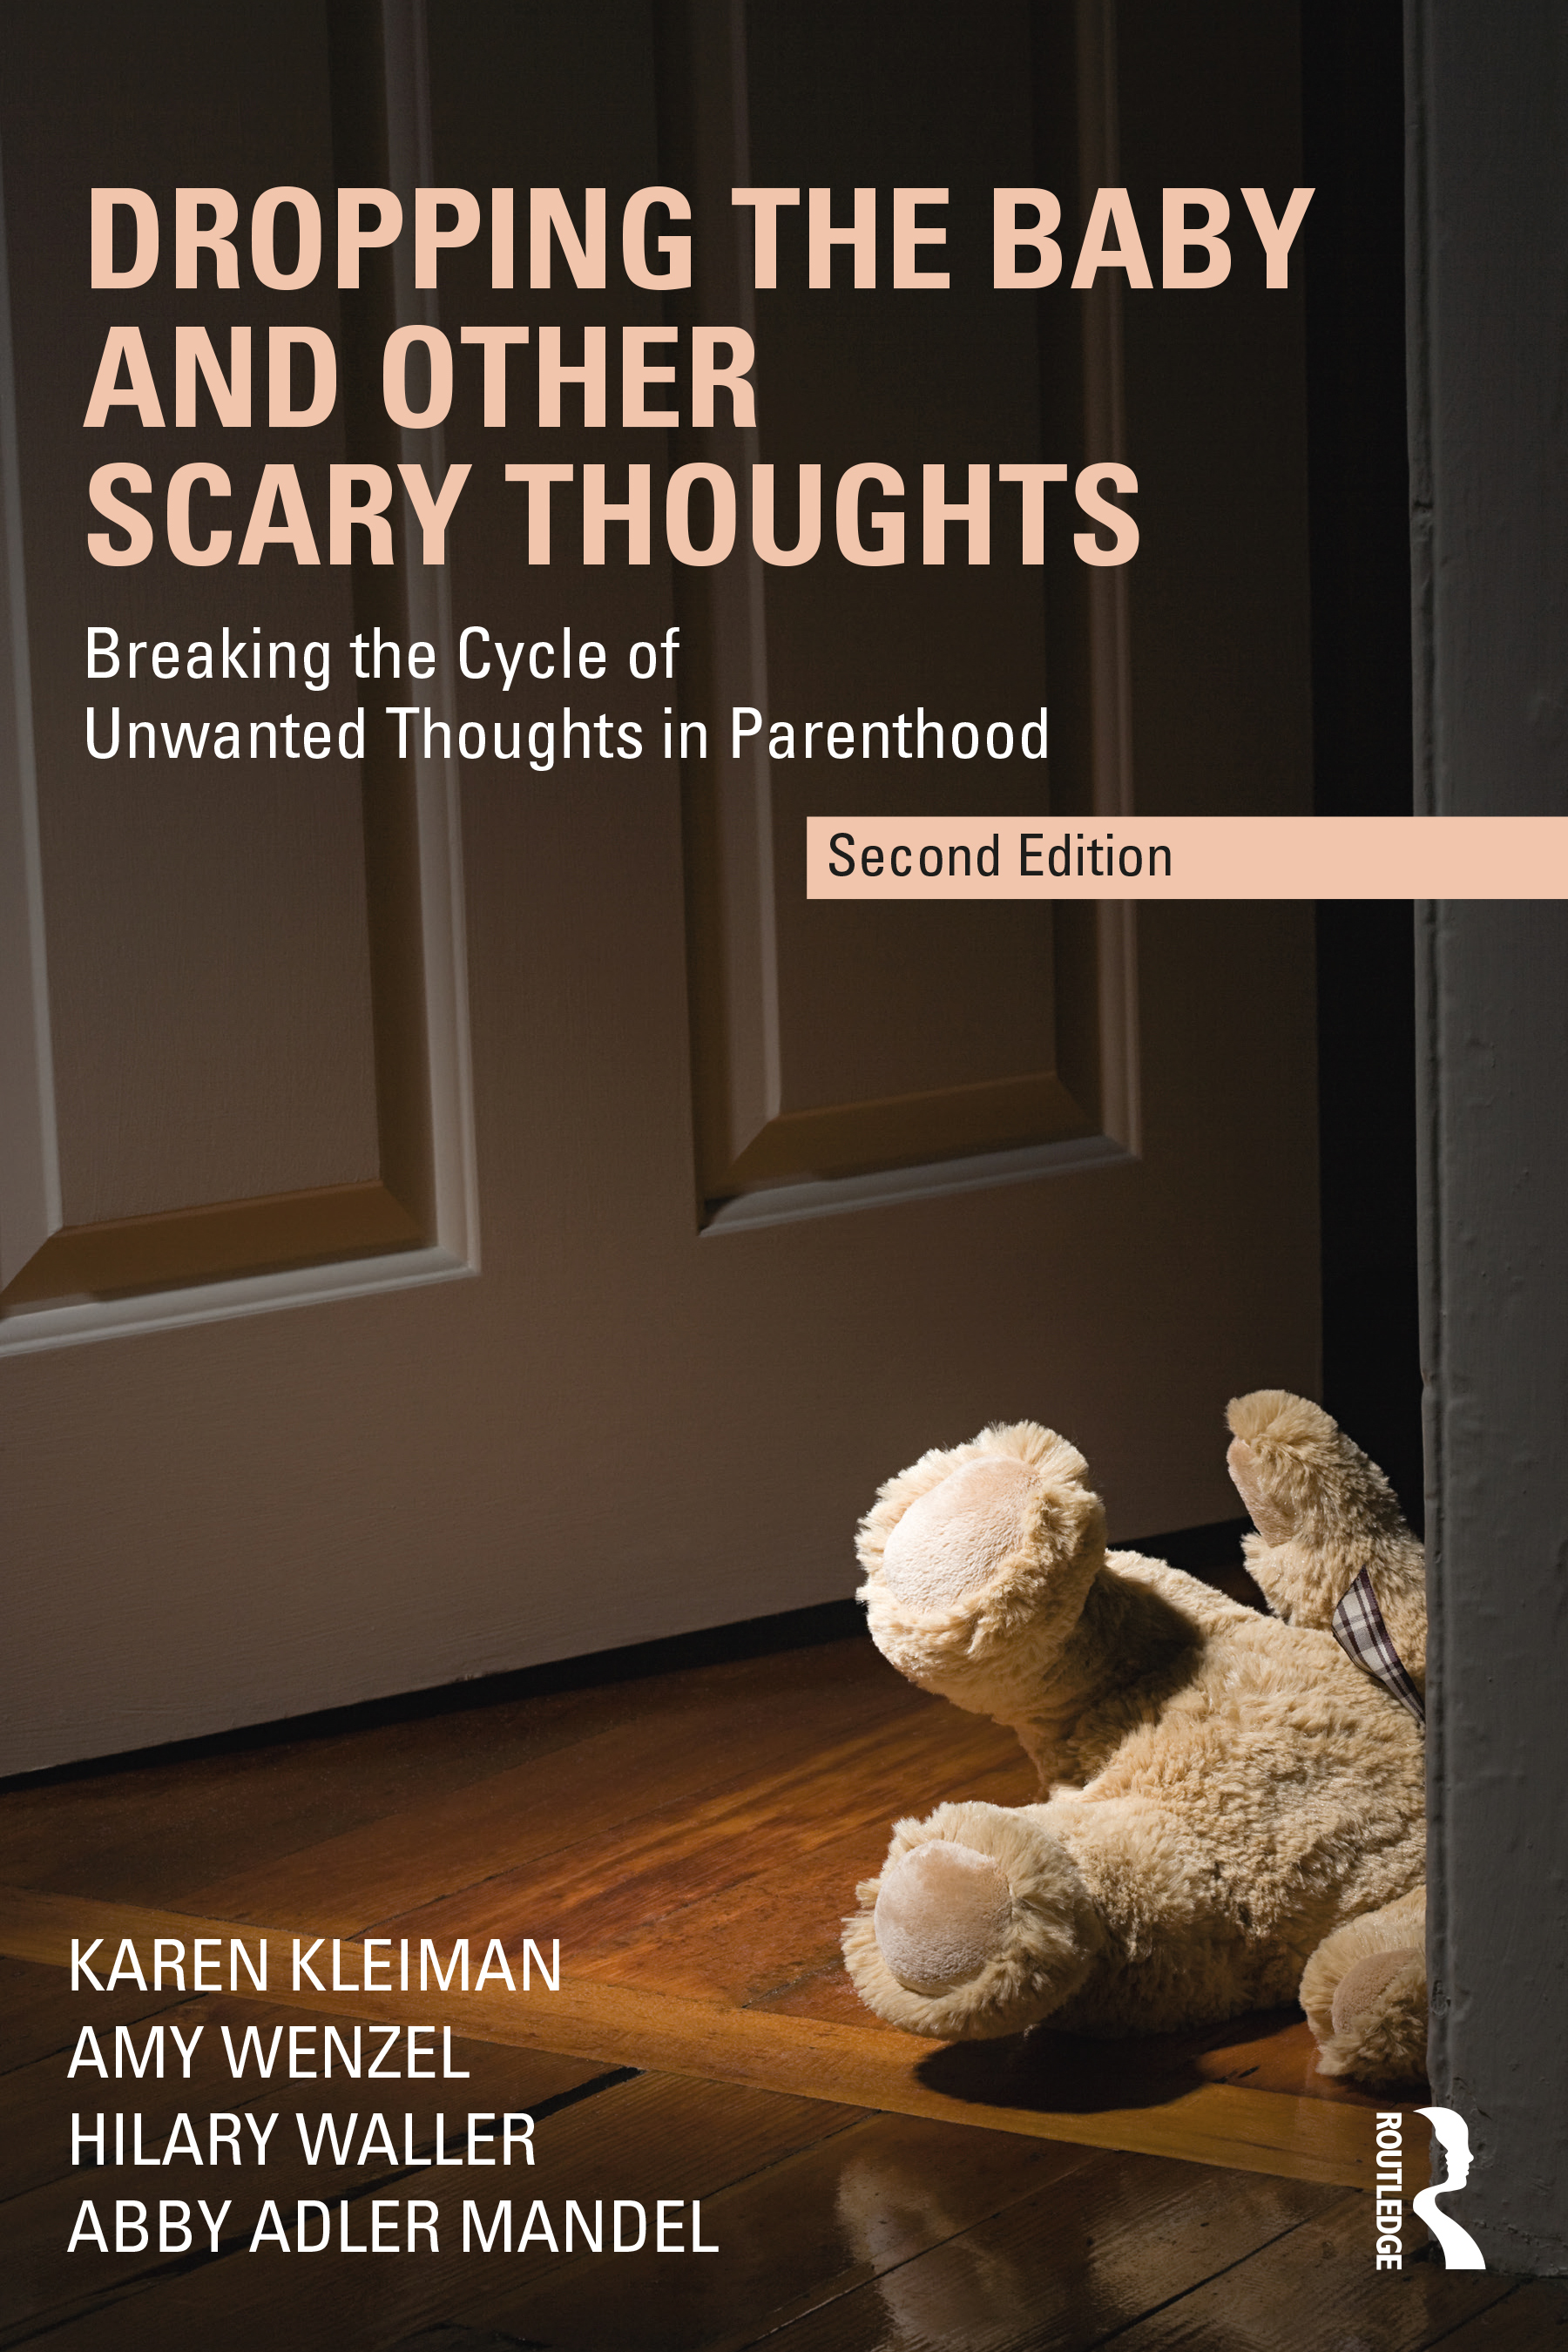 Dropping the Baby and Other Scary Thoughts (2nd Edition)